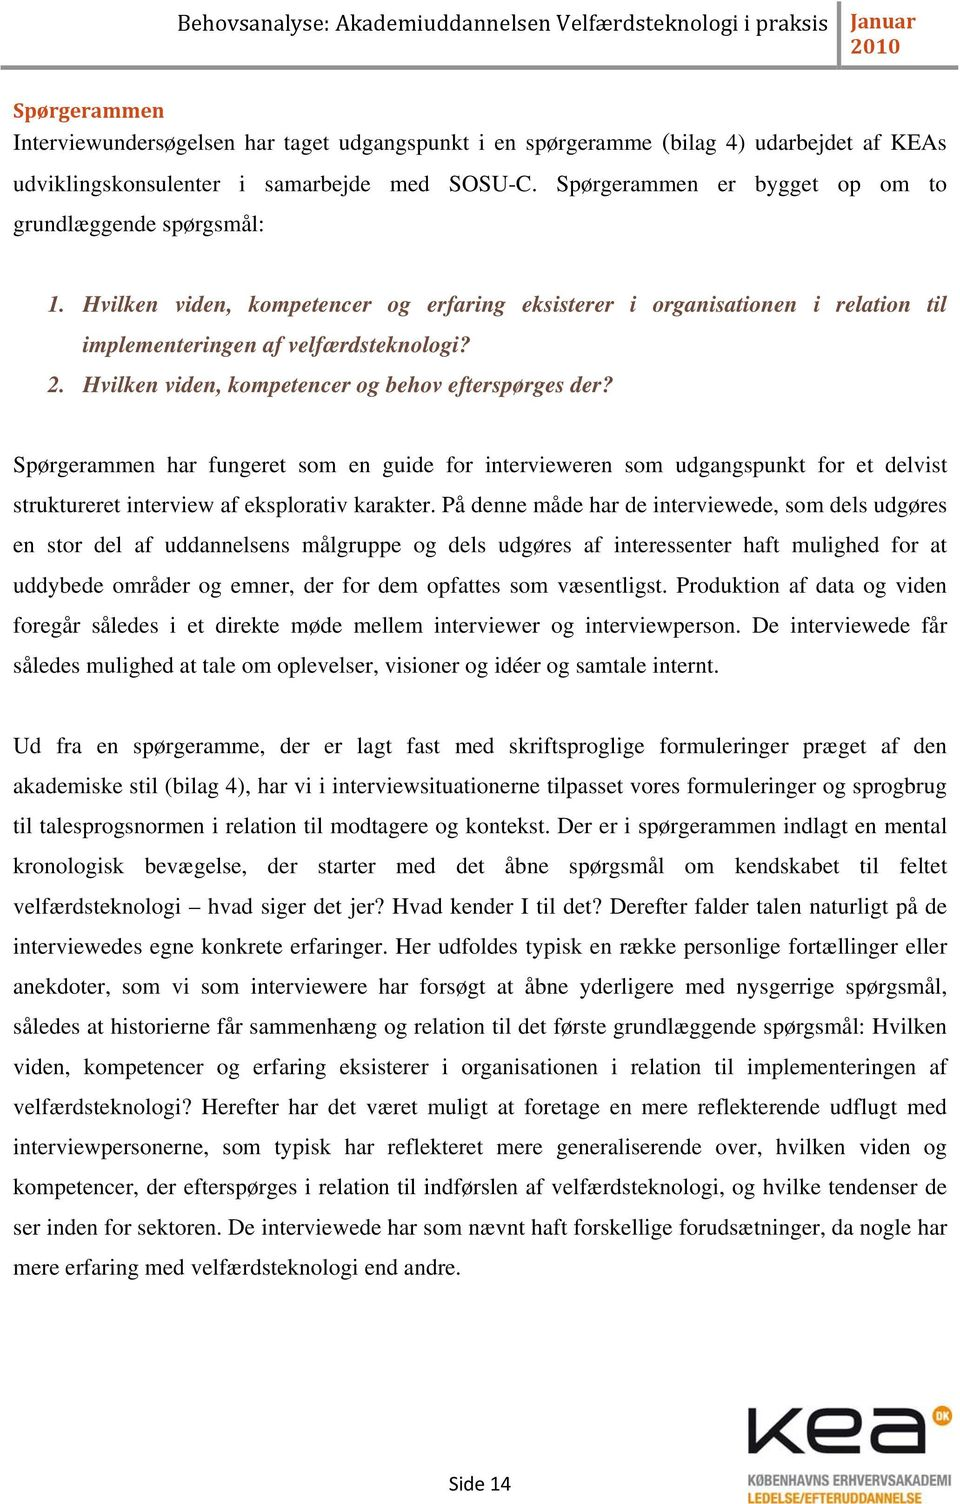 Hvilken viden, kompetencer og behov efterspørges der? Spørgerammen har fungeret som en guide for intervieweren som udgangspunkt for et delvist struktureret interview af eksplorativ karakter.